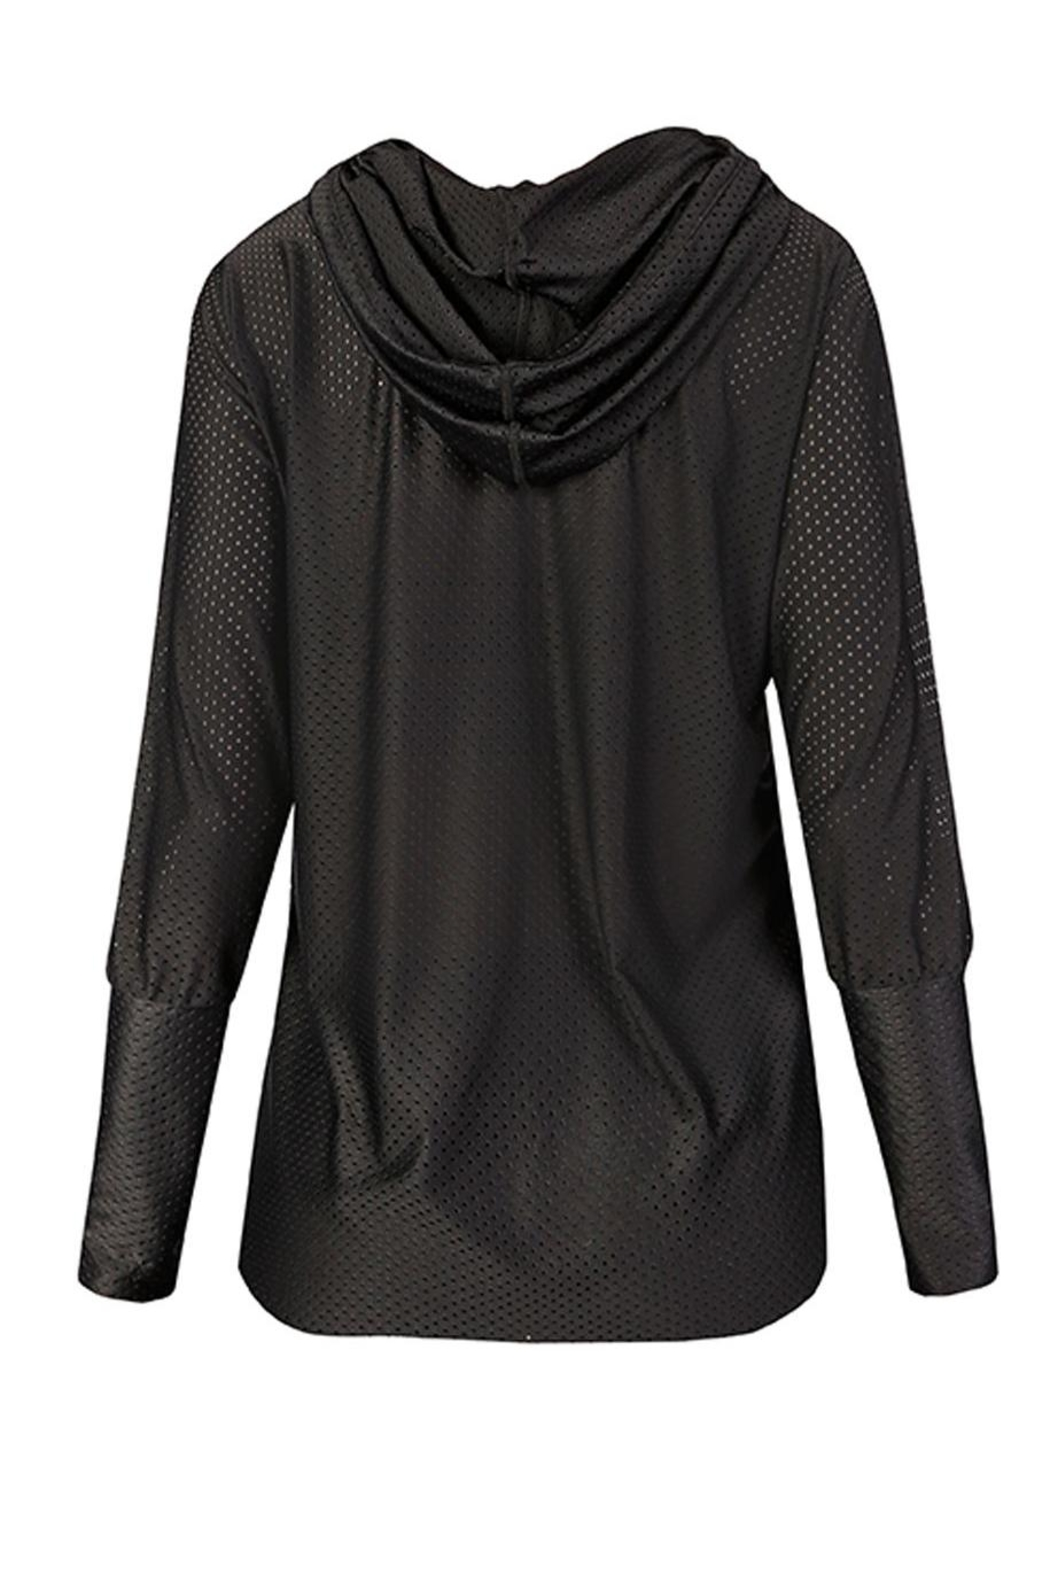 Maaji Waves Mesh-Black Hoodie - Back Cropped Image